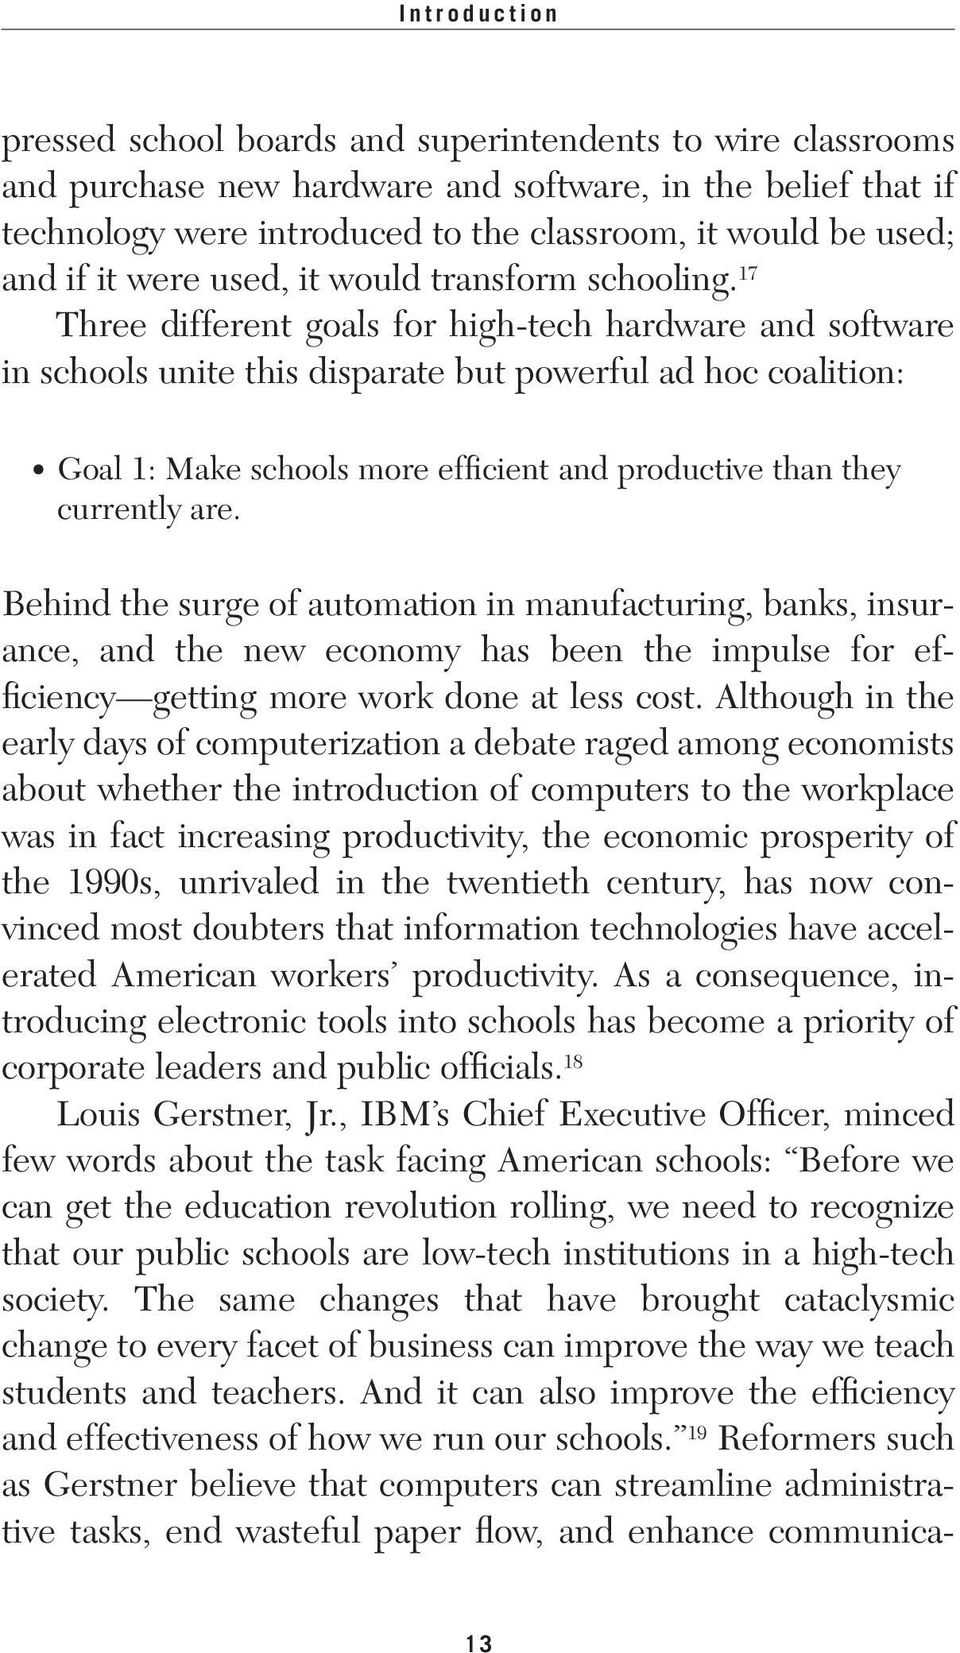 17 Three different goals for high-tech hardware and software in schools unite this disparate but powerful ad hoc coalition: Goal 1: Make schools more efficient and productive than they currently are.